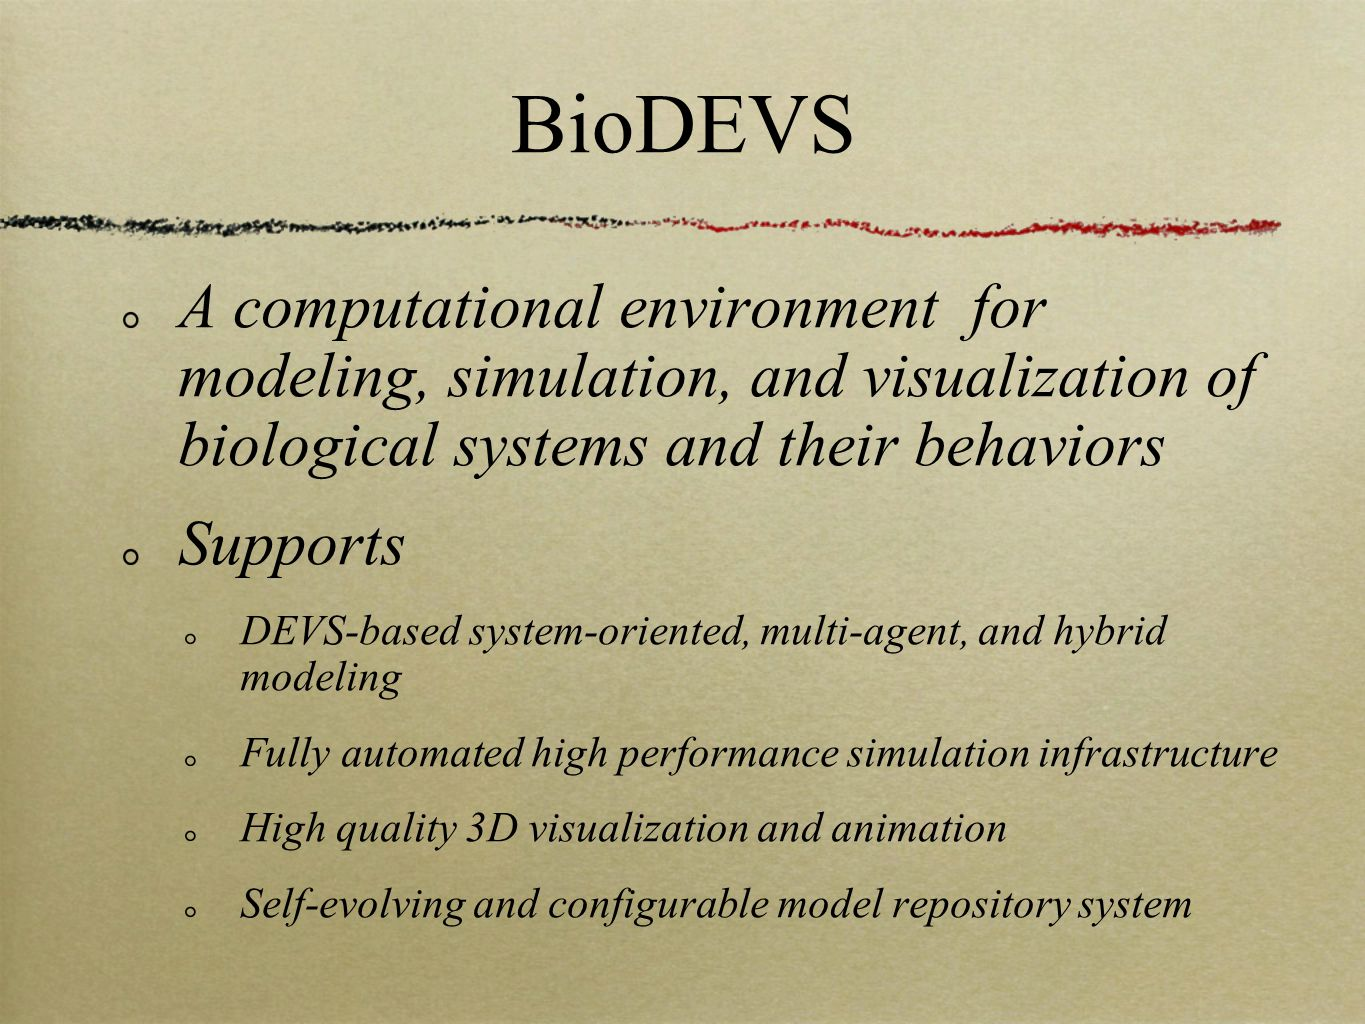 BioDEVS A computational environment for modeling, simulation, and visualization of biological systems and their behaviors Supports DEVS-based system-oriented, multi-agent, and hybrid modeling Fully automated high performance simulation infrastructure High quality 3D visualization and animation Self-evolving and configurable model repository system